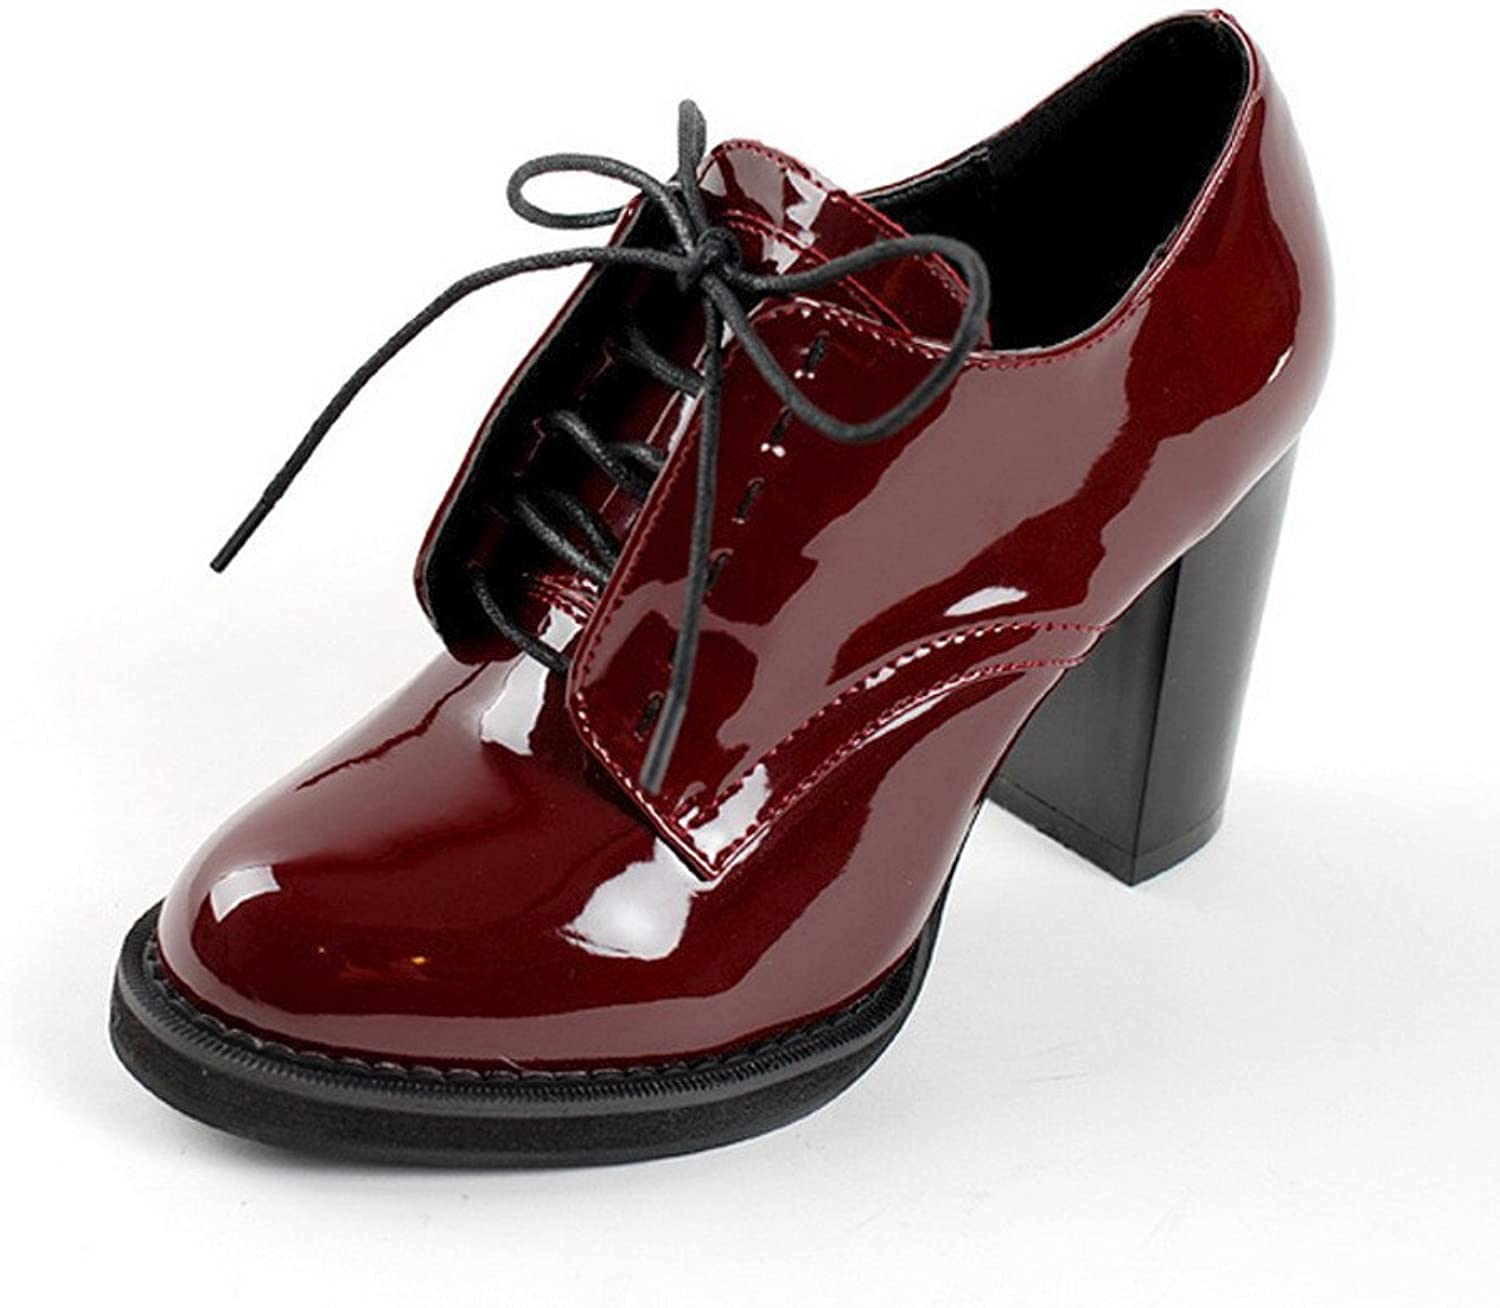 AmoonyFashion Womens Closed Round Toe High Heels PU Patent Leather Solid Boots with Chunky Heels, Claret, 10 B(M) US